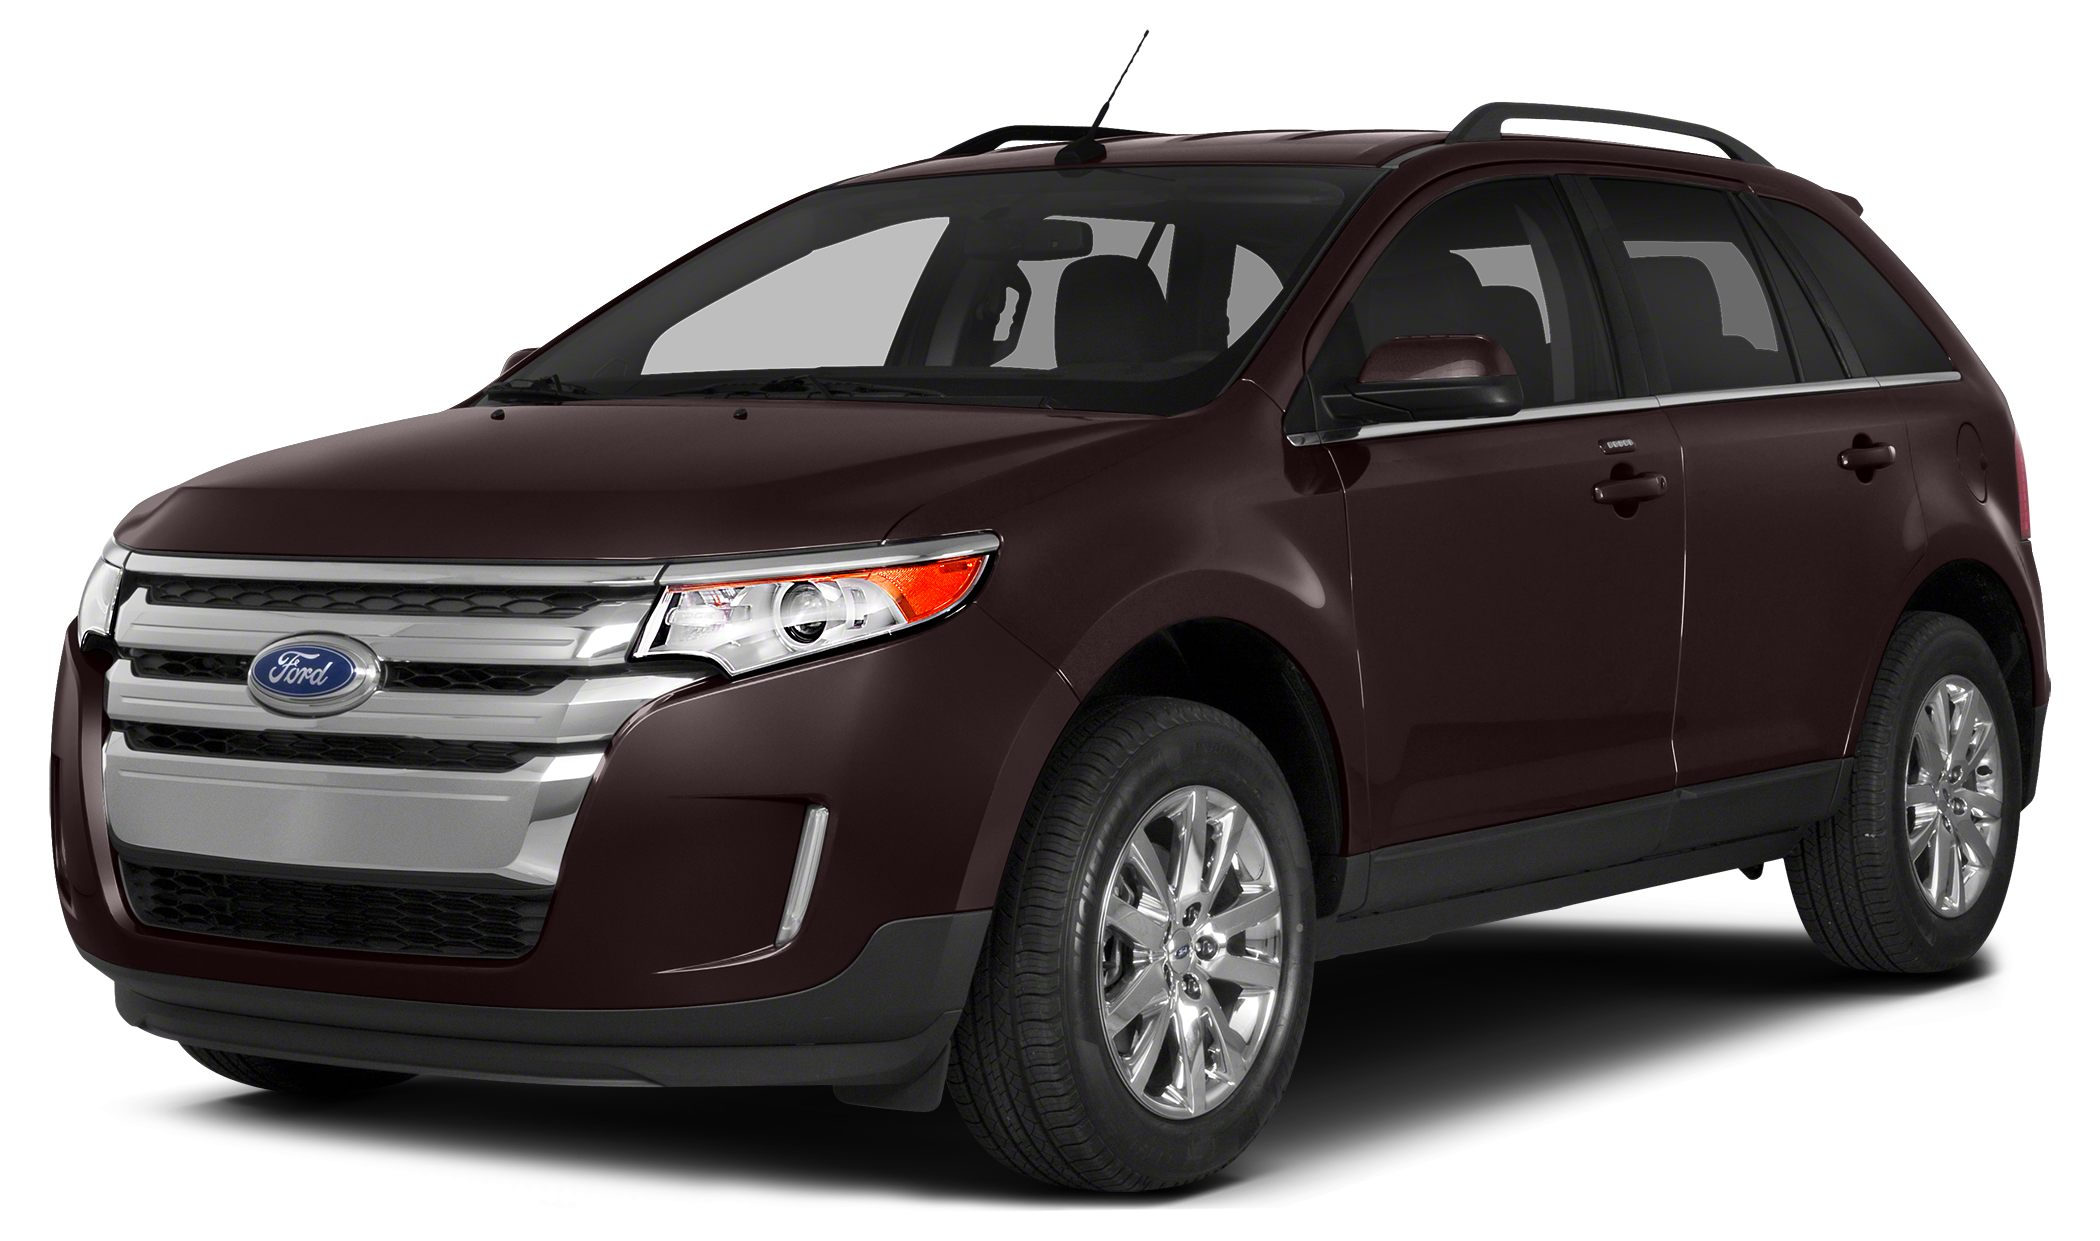 2014 Ford Edge Limited PRICED TO MOVE 1300 below NADA Retail EPA 25 MPG Hwy18 MPG City Ford